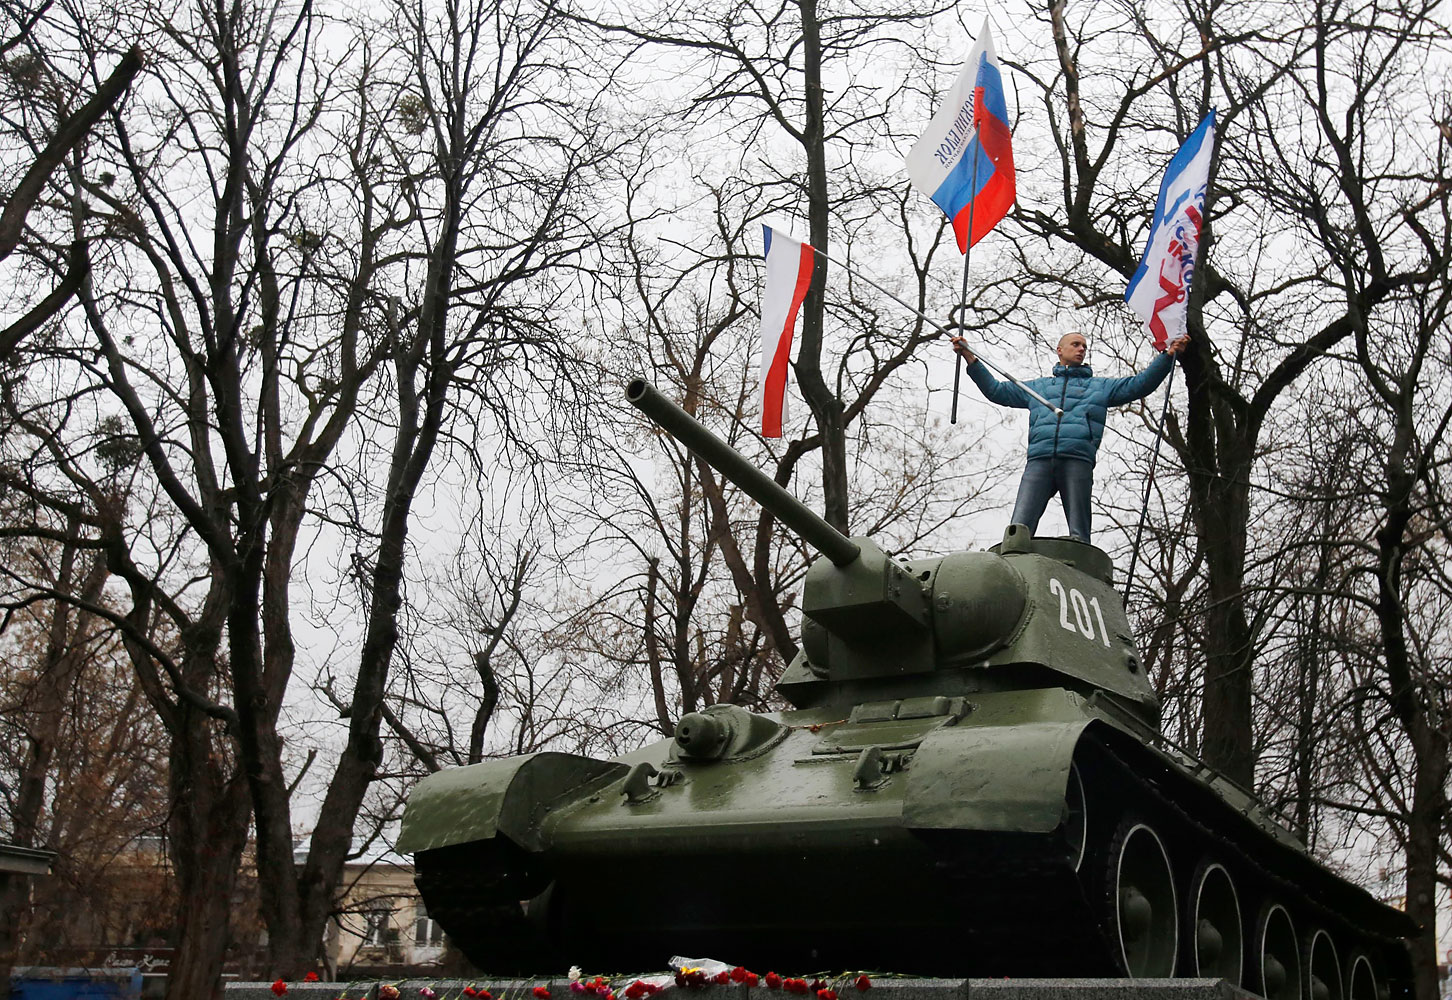 A Pro-Russian demonstrator waves Russian and Crimea flags atop an old Soviet Army tank during a protest in front of a local government building in Simferopol, Crimea, Ukraine, Feb. 27, 2014.